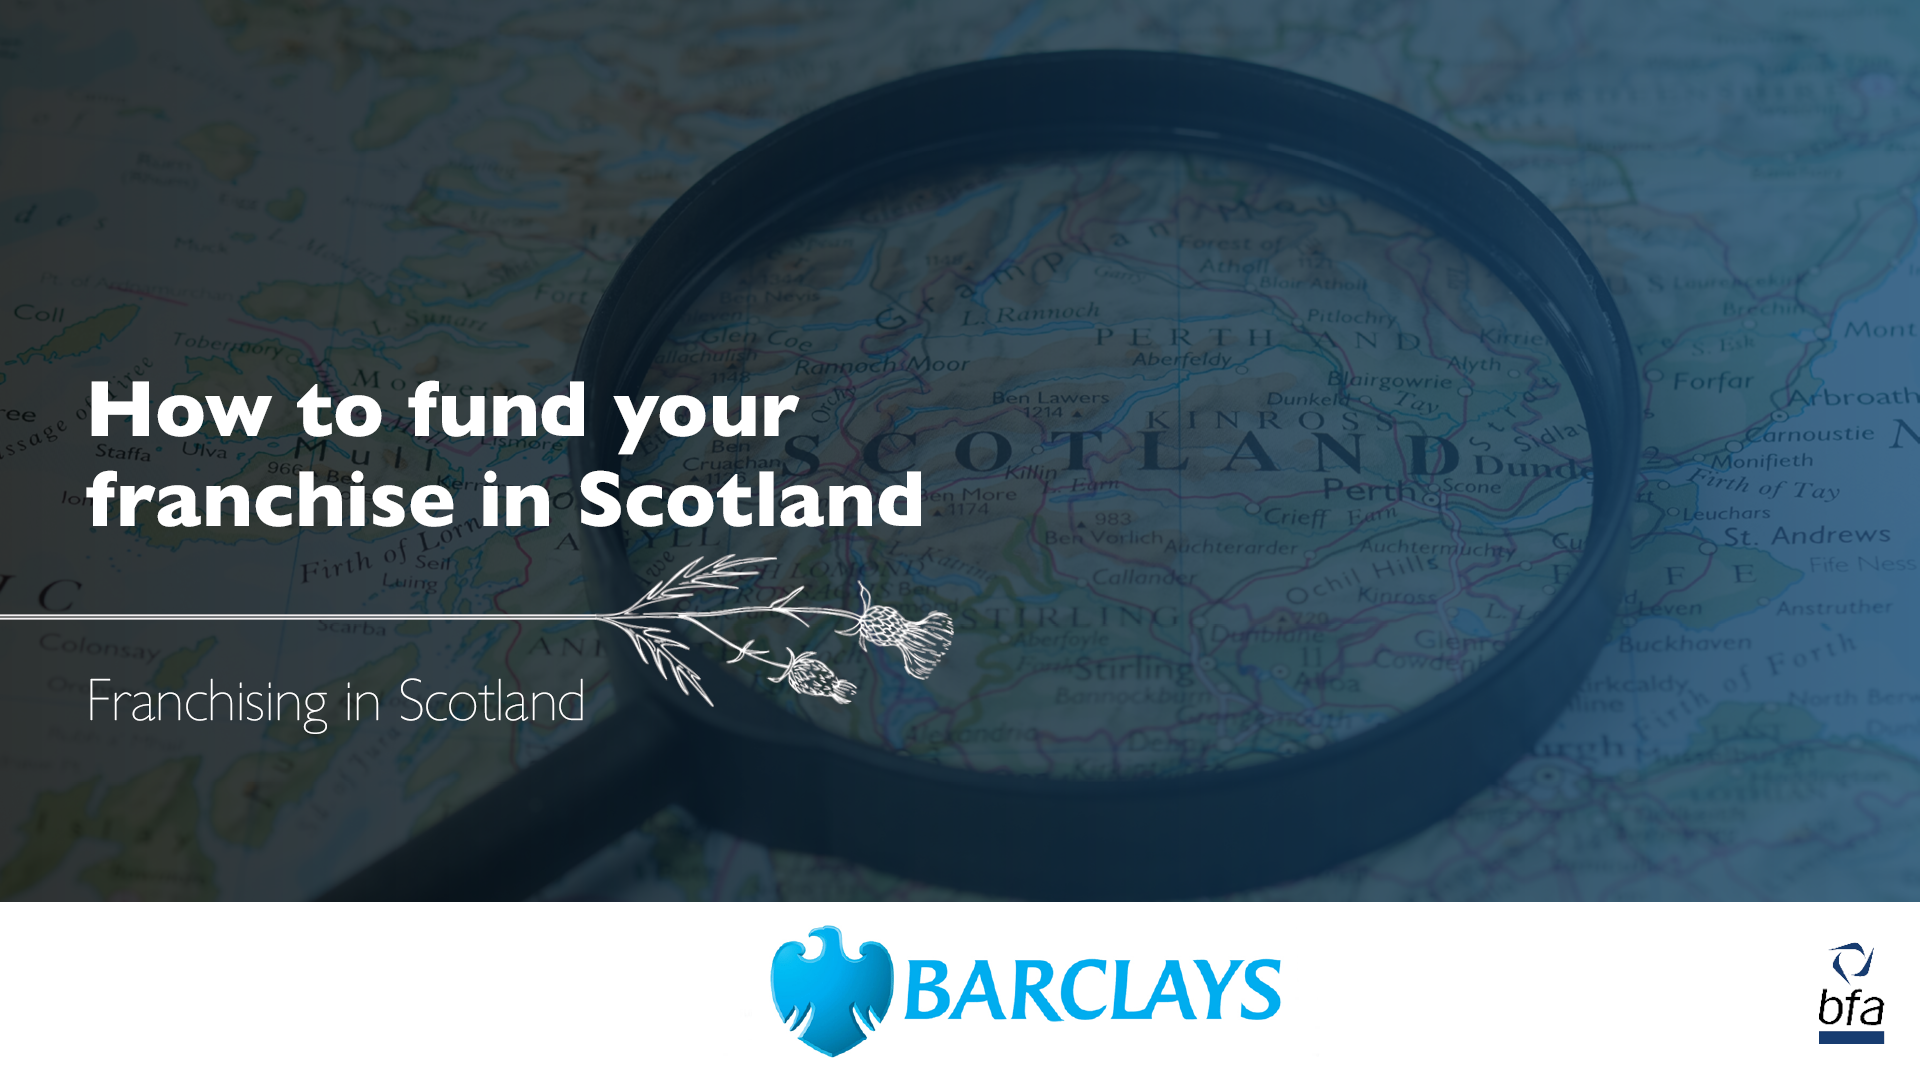 How to fund your franchise in Scotland